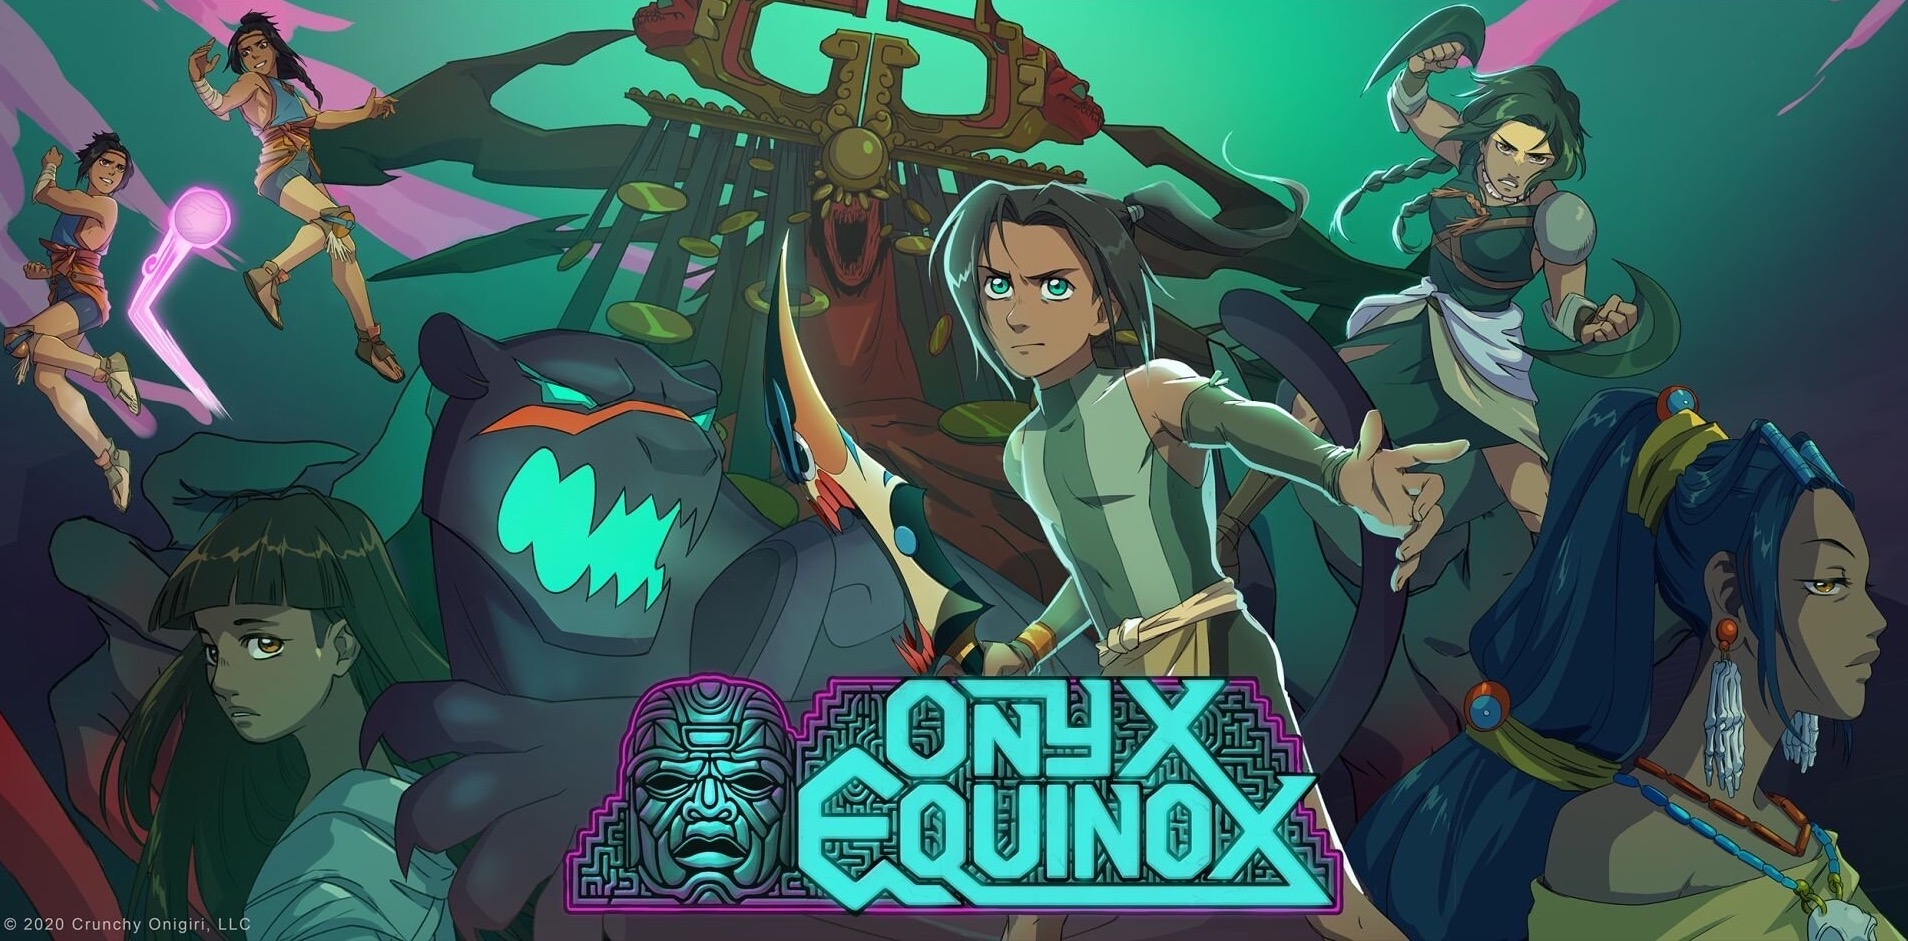 All eps of Onyx Equinox are out now!